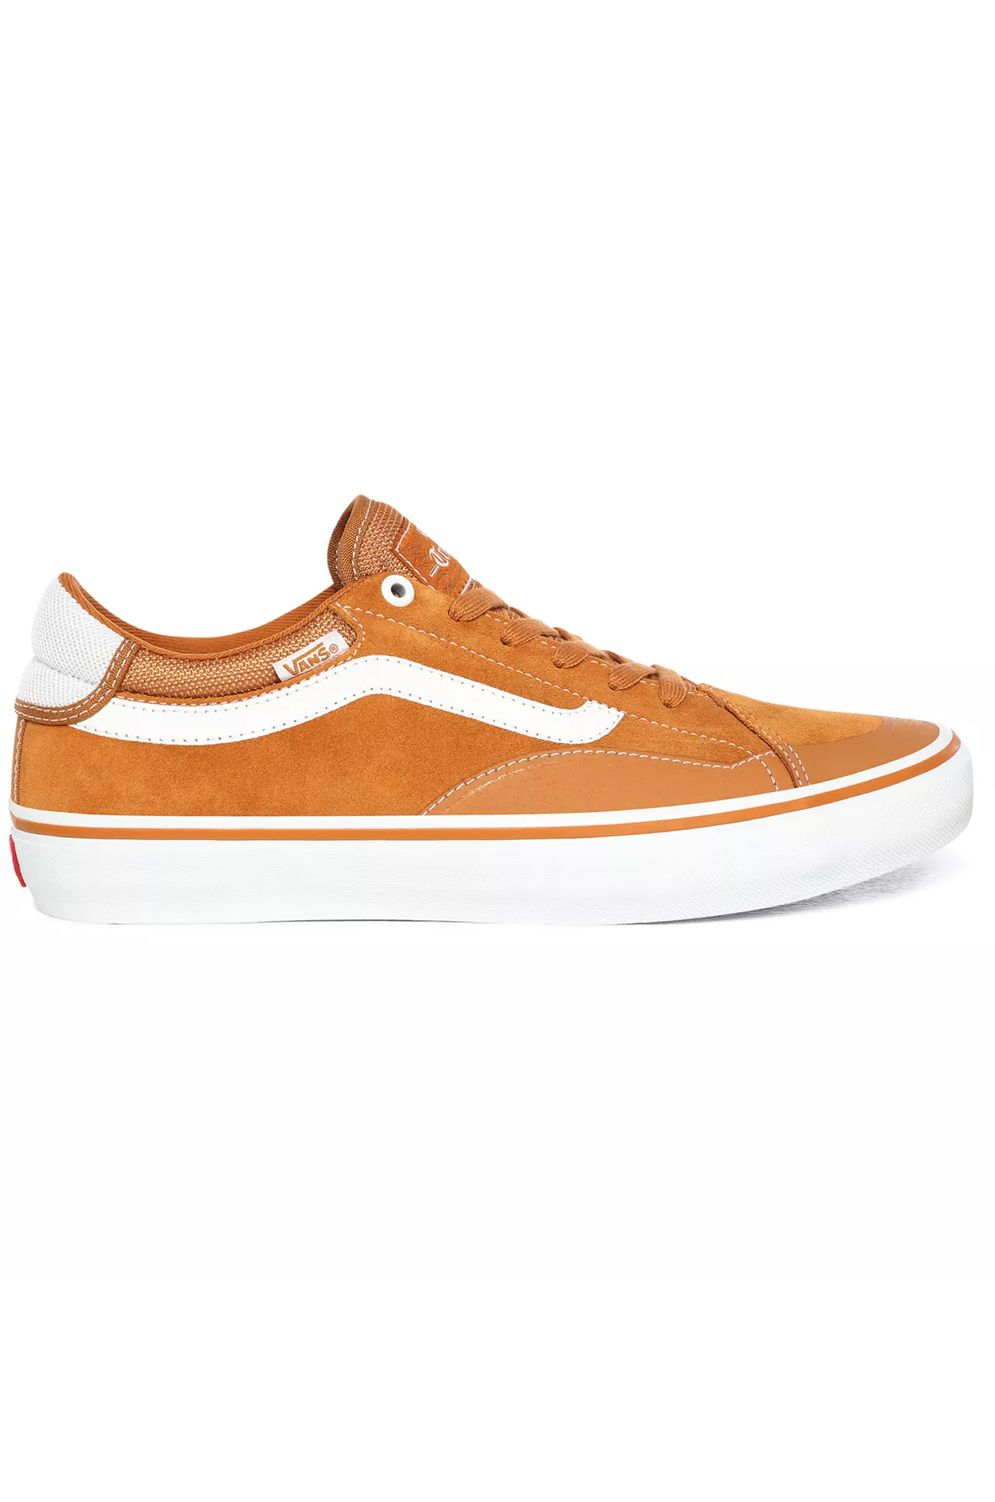 Tenis Vans MN TNT ADVANCED PROTOTYPE Pumpkin/White